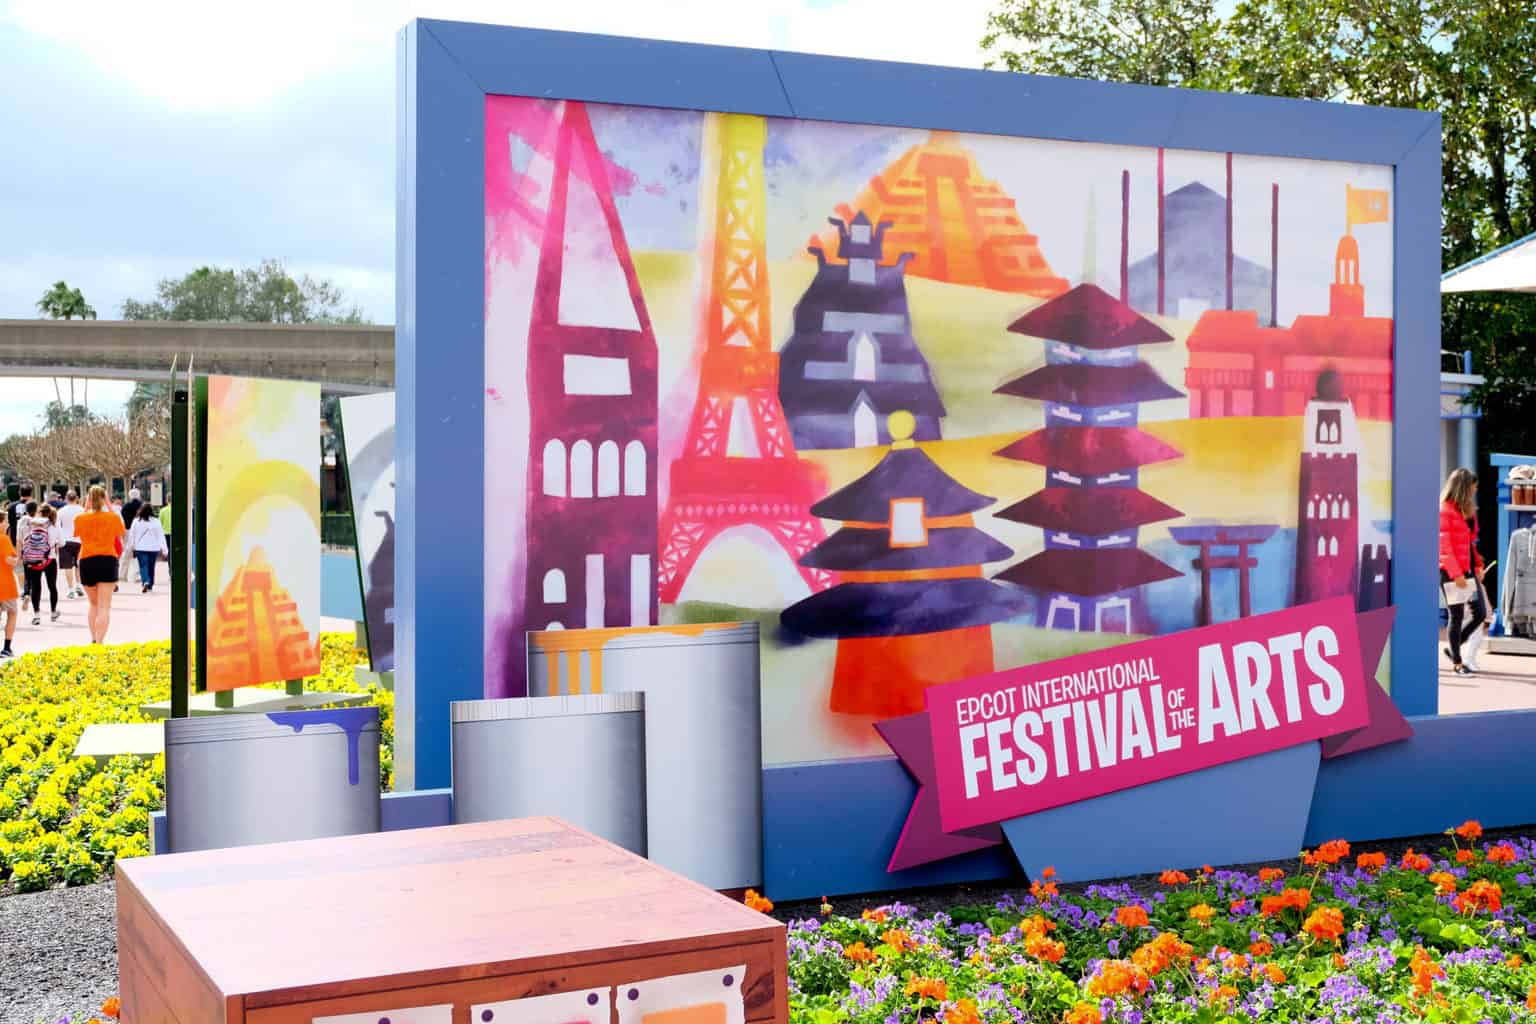 Epcot International Festival of the Arts: What's New?